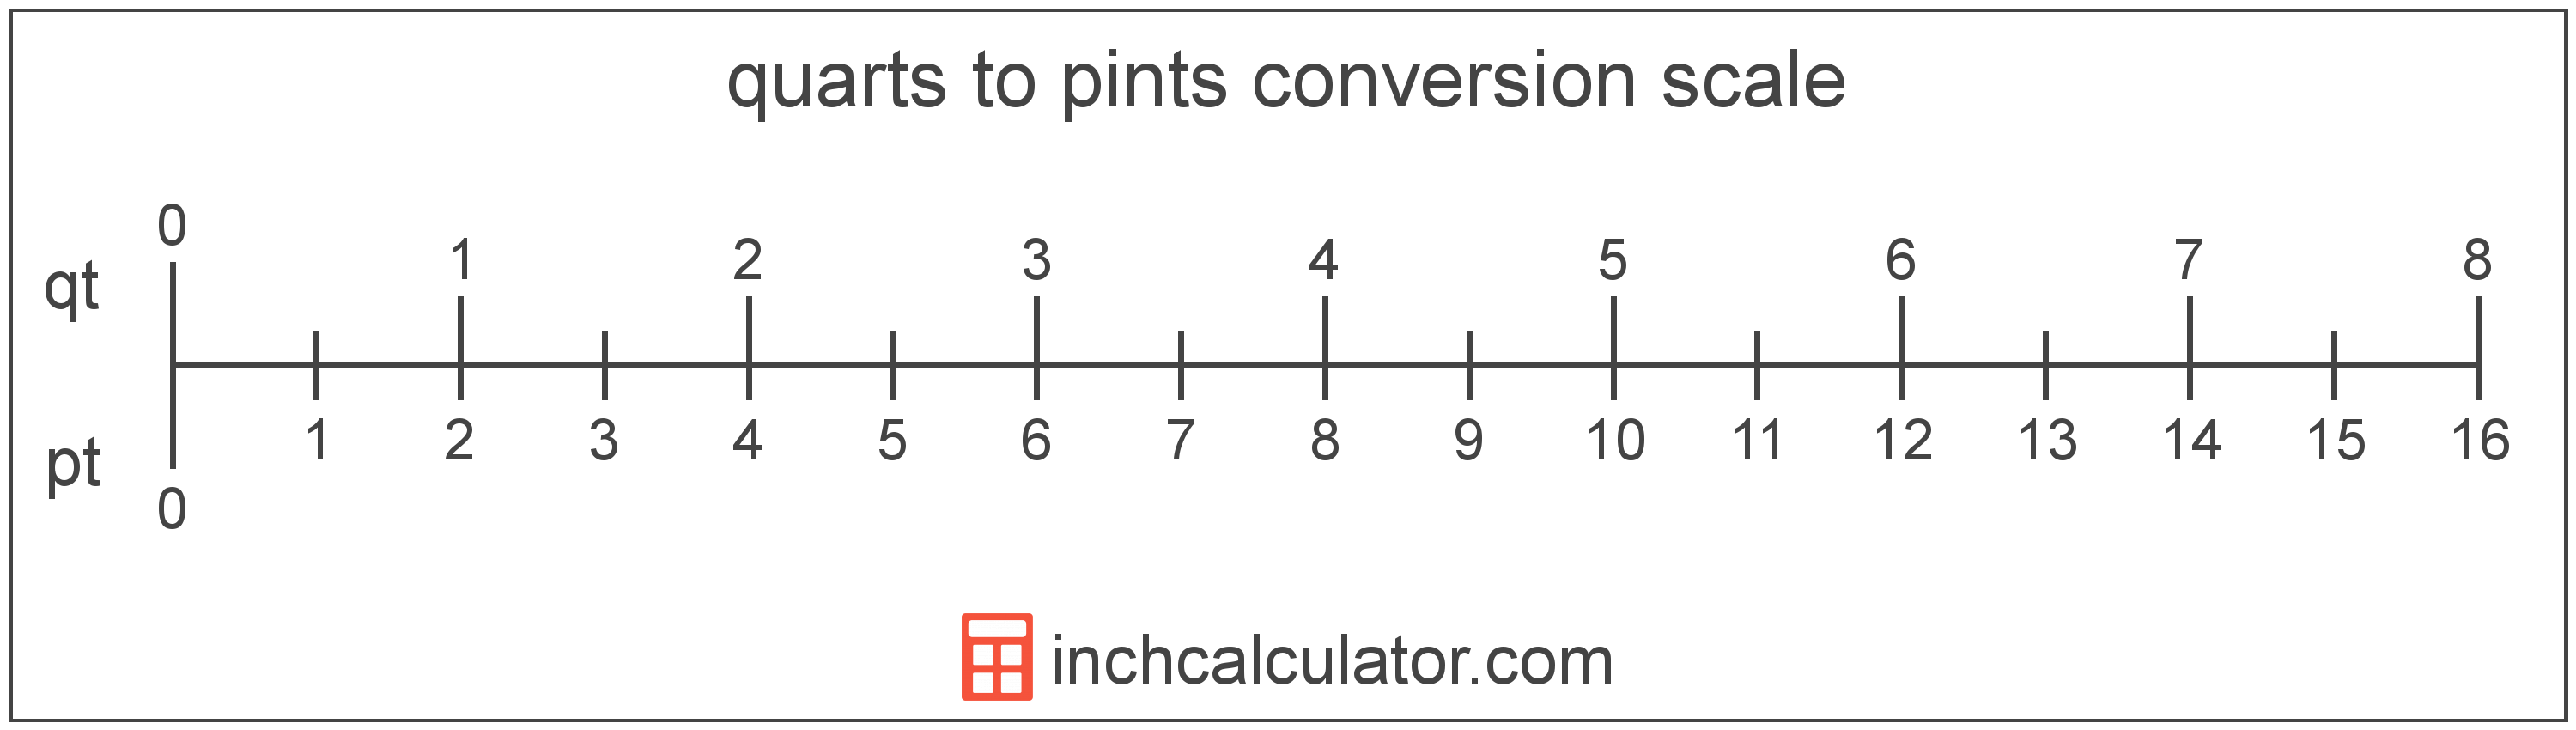 conversion scale showing quarts and equivalent pints volume values